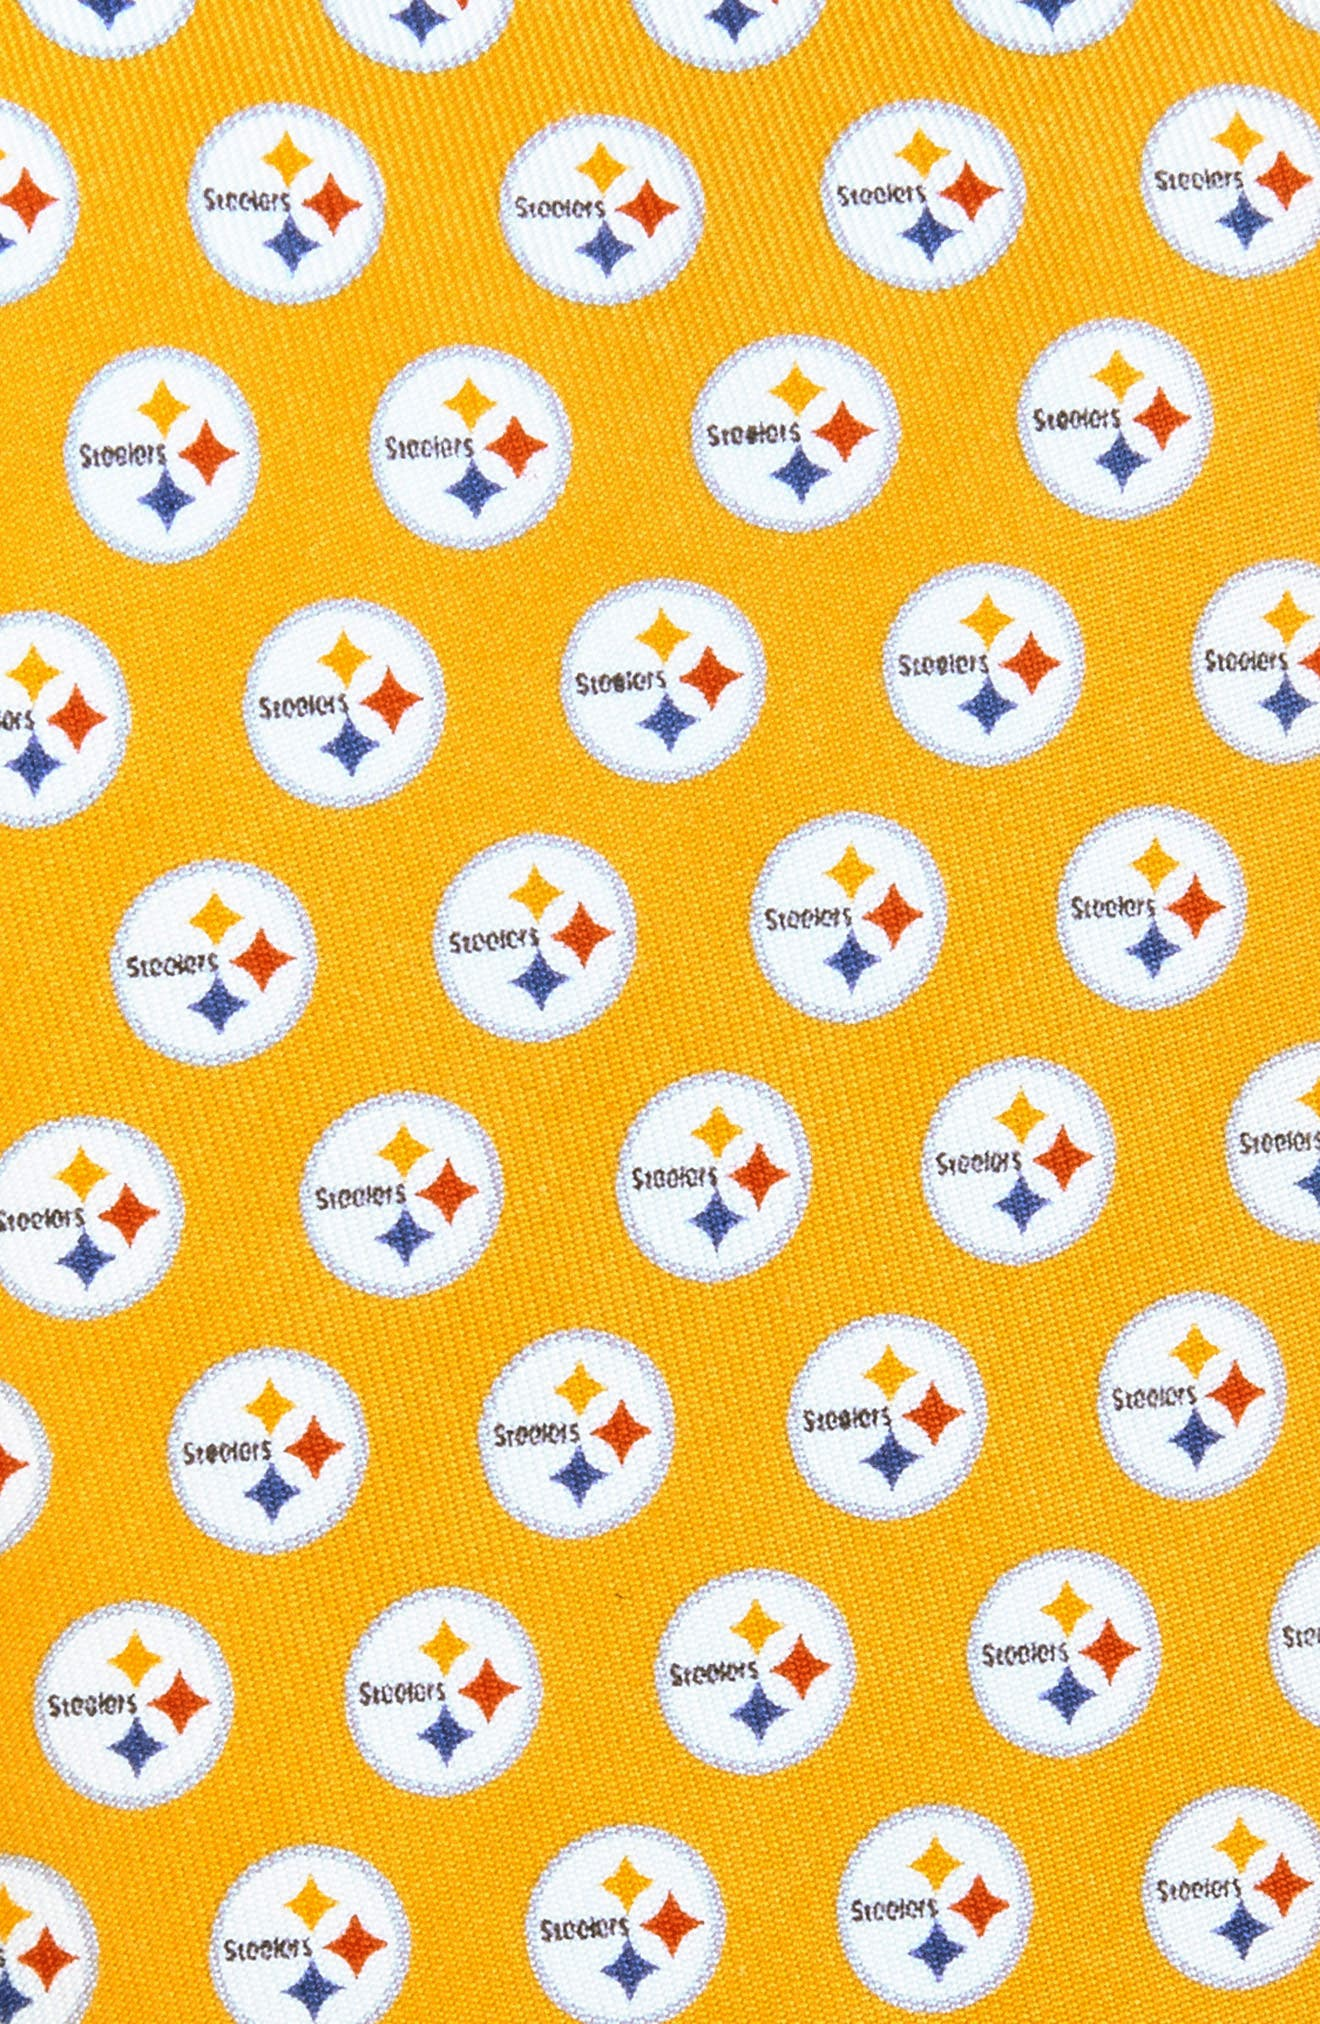 'Pittsburgh Steelers - NFL' Woven Silk Tie,                             Alternate thumbnail 2, color,                             720